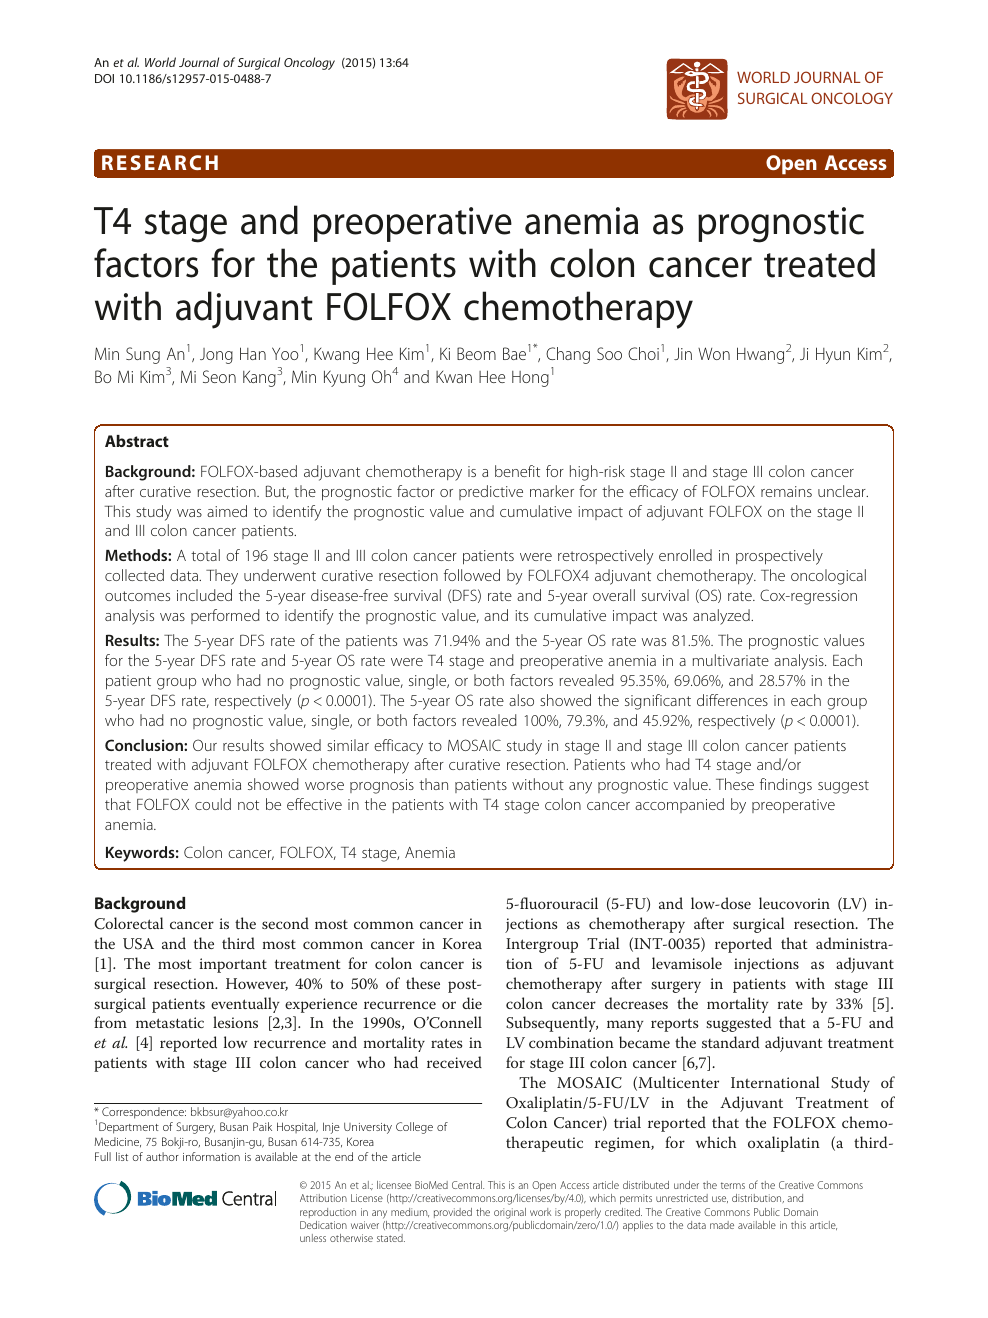 T4 Stage And Preoperative Anemia As Prognostic Factors For The Patients With Colon Cancer Treated With Adjuvant Folfox Chemotherapy Topic Of Research Paper In Clinical Medicine Download Scholarly Article Pdf And